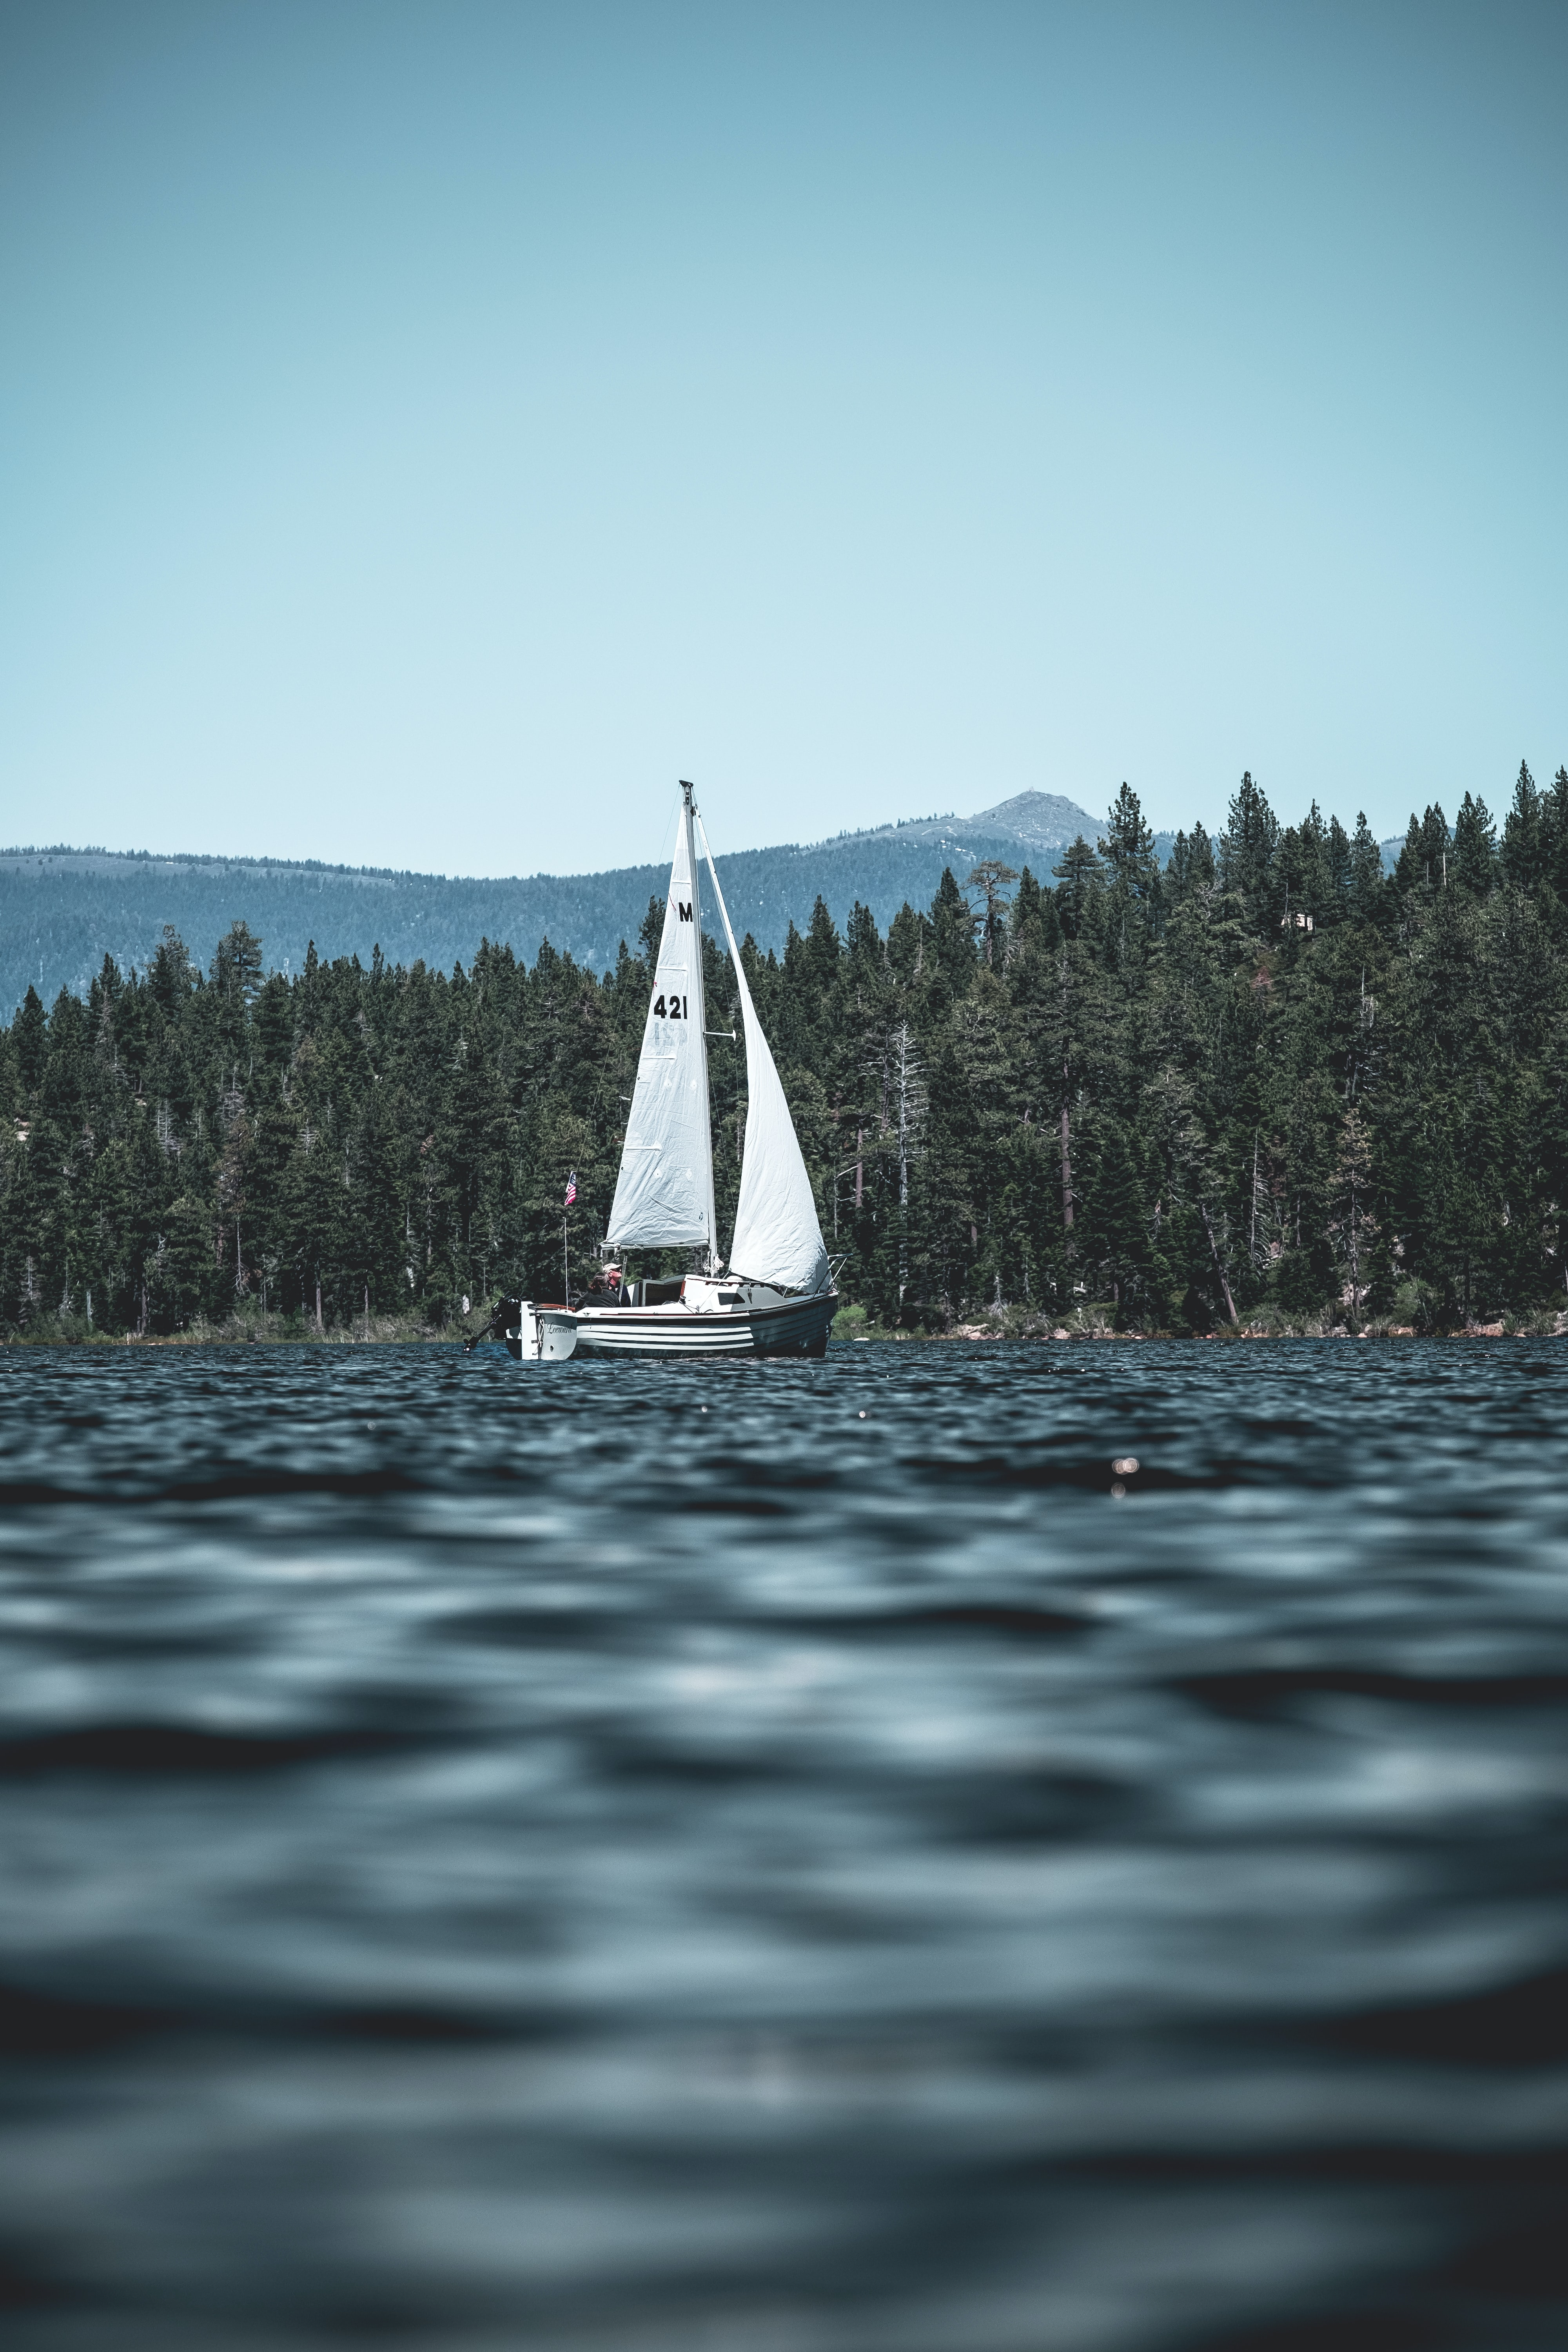 white and black sailboat on body of water near green high trees and mountain under blue sky at daytime